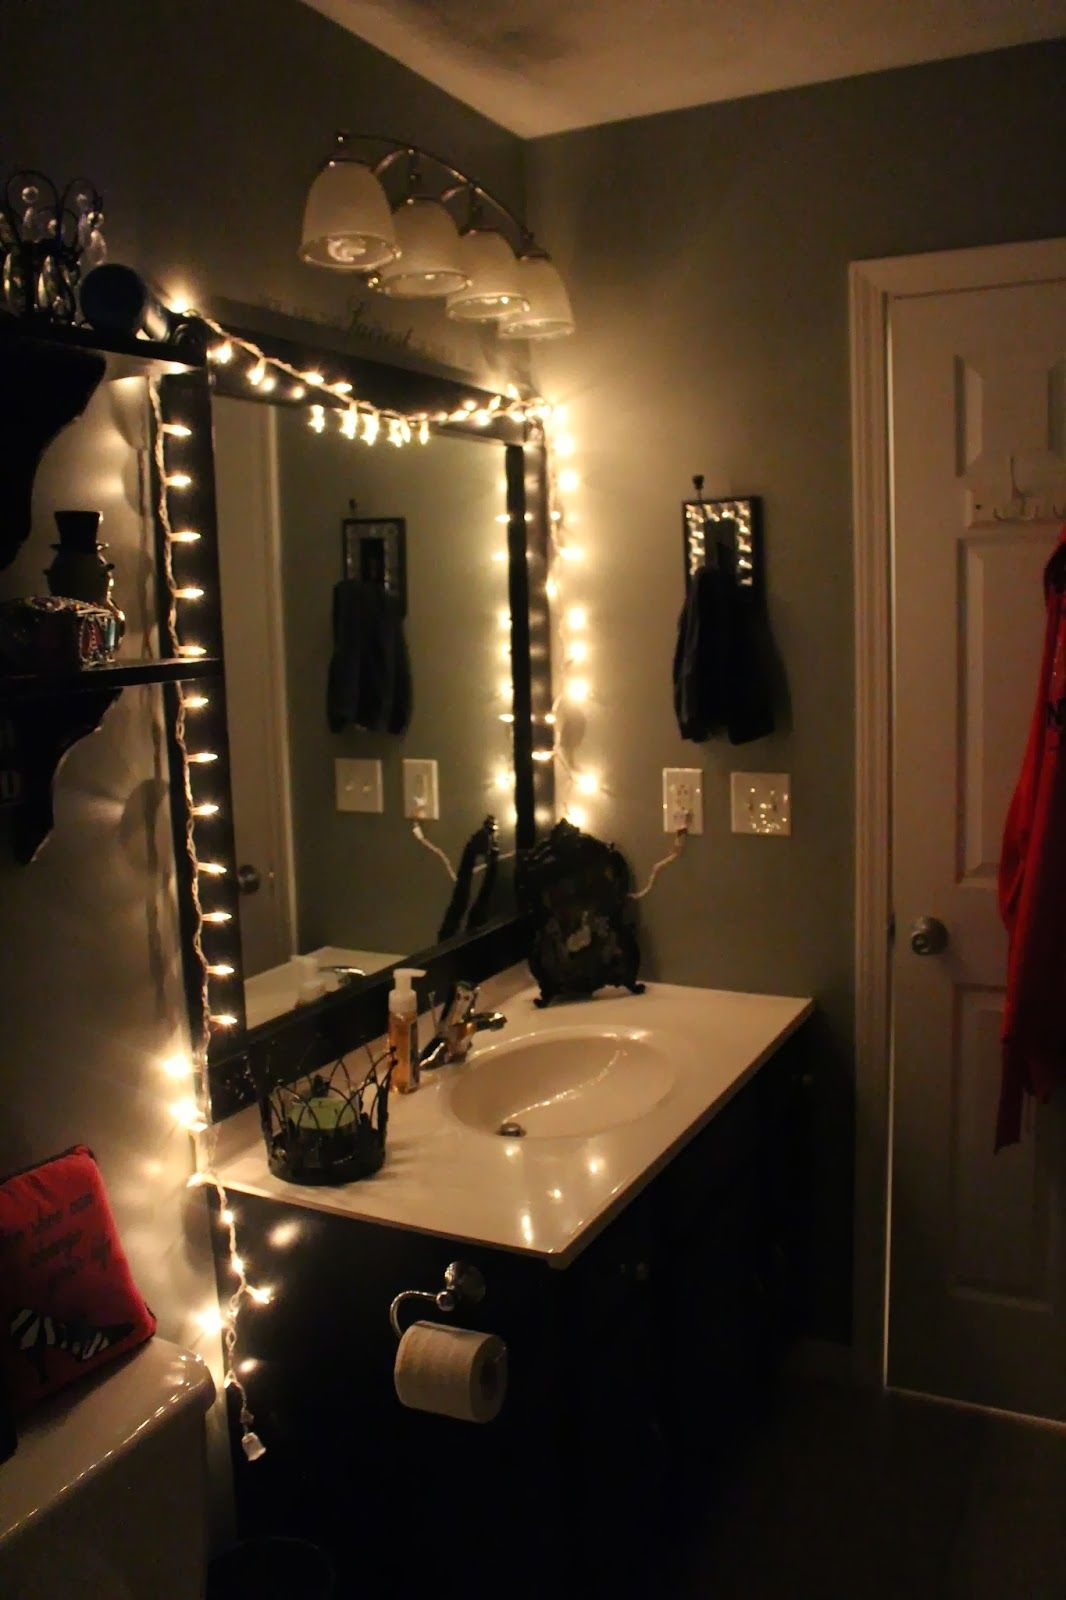 Bathroom Rennovation Black And White Christmas Lights Womens - Lights around bathroom mirror